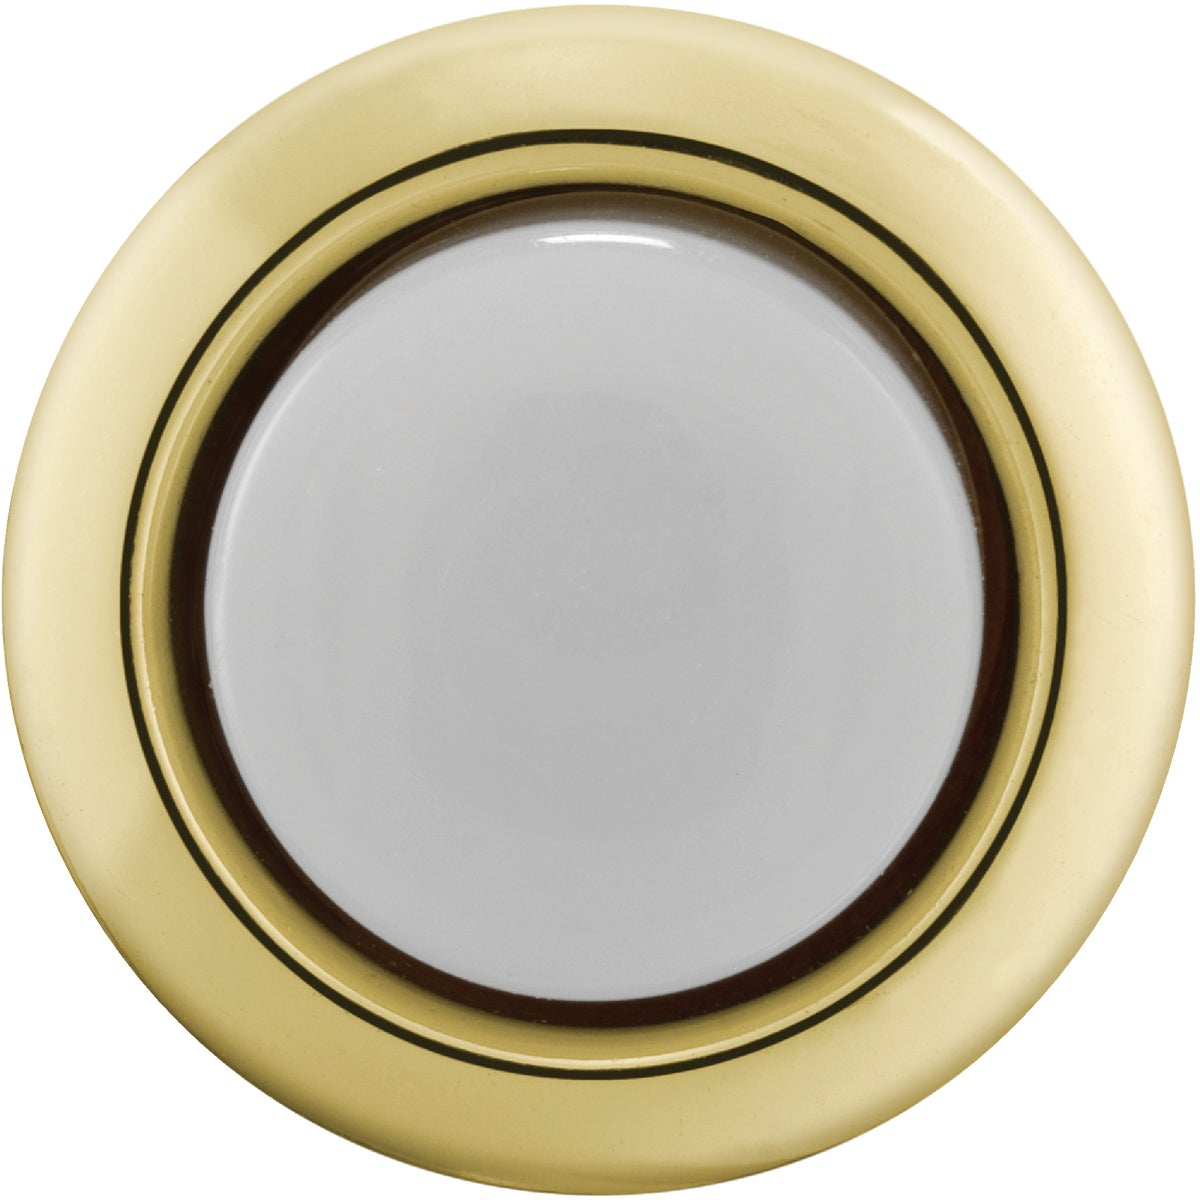 GOLD LIGHTED PUSH-BUTTON - DH1202L by Thomas & Betts